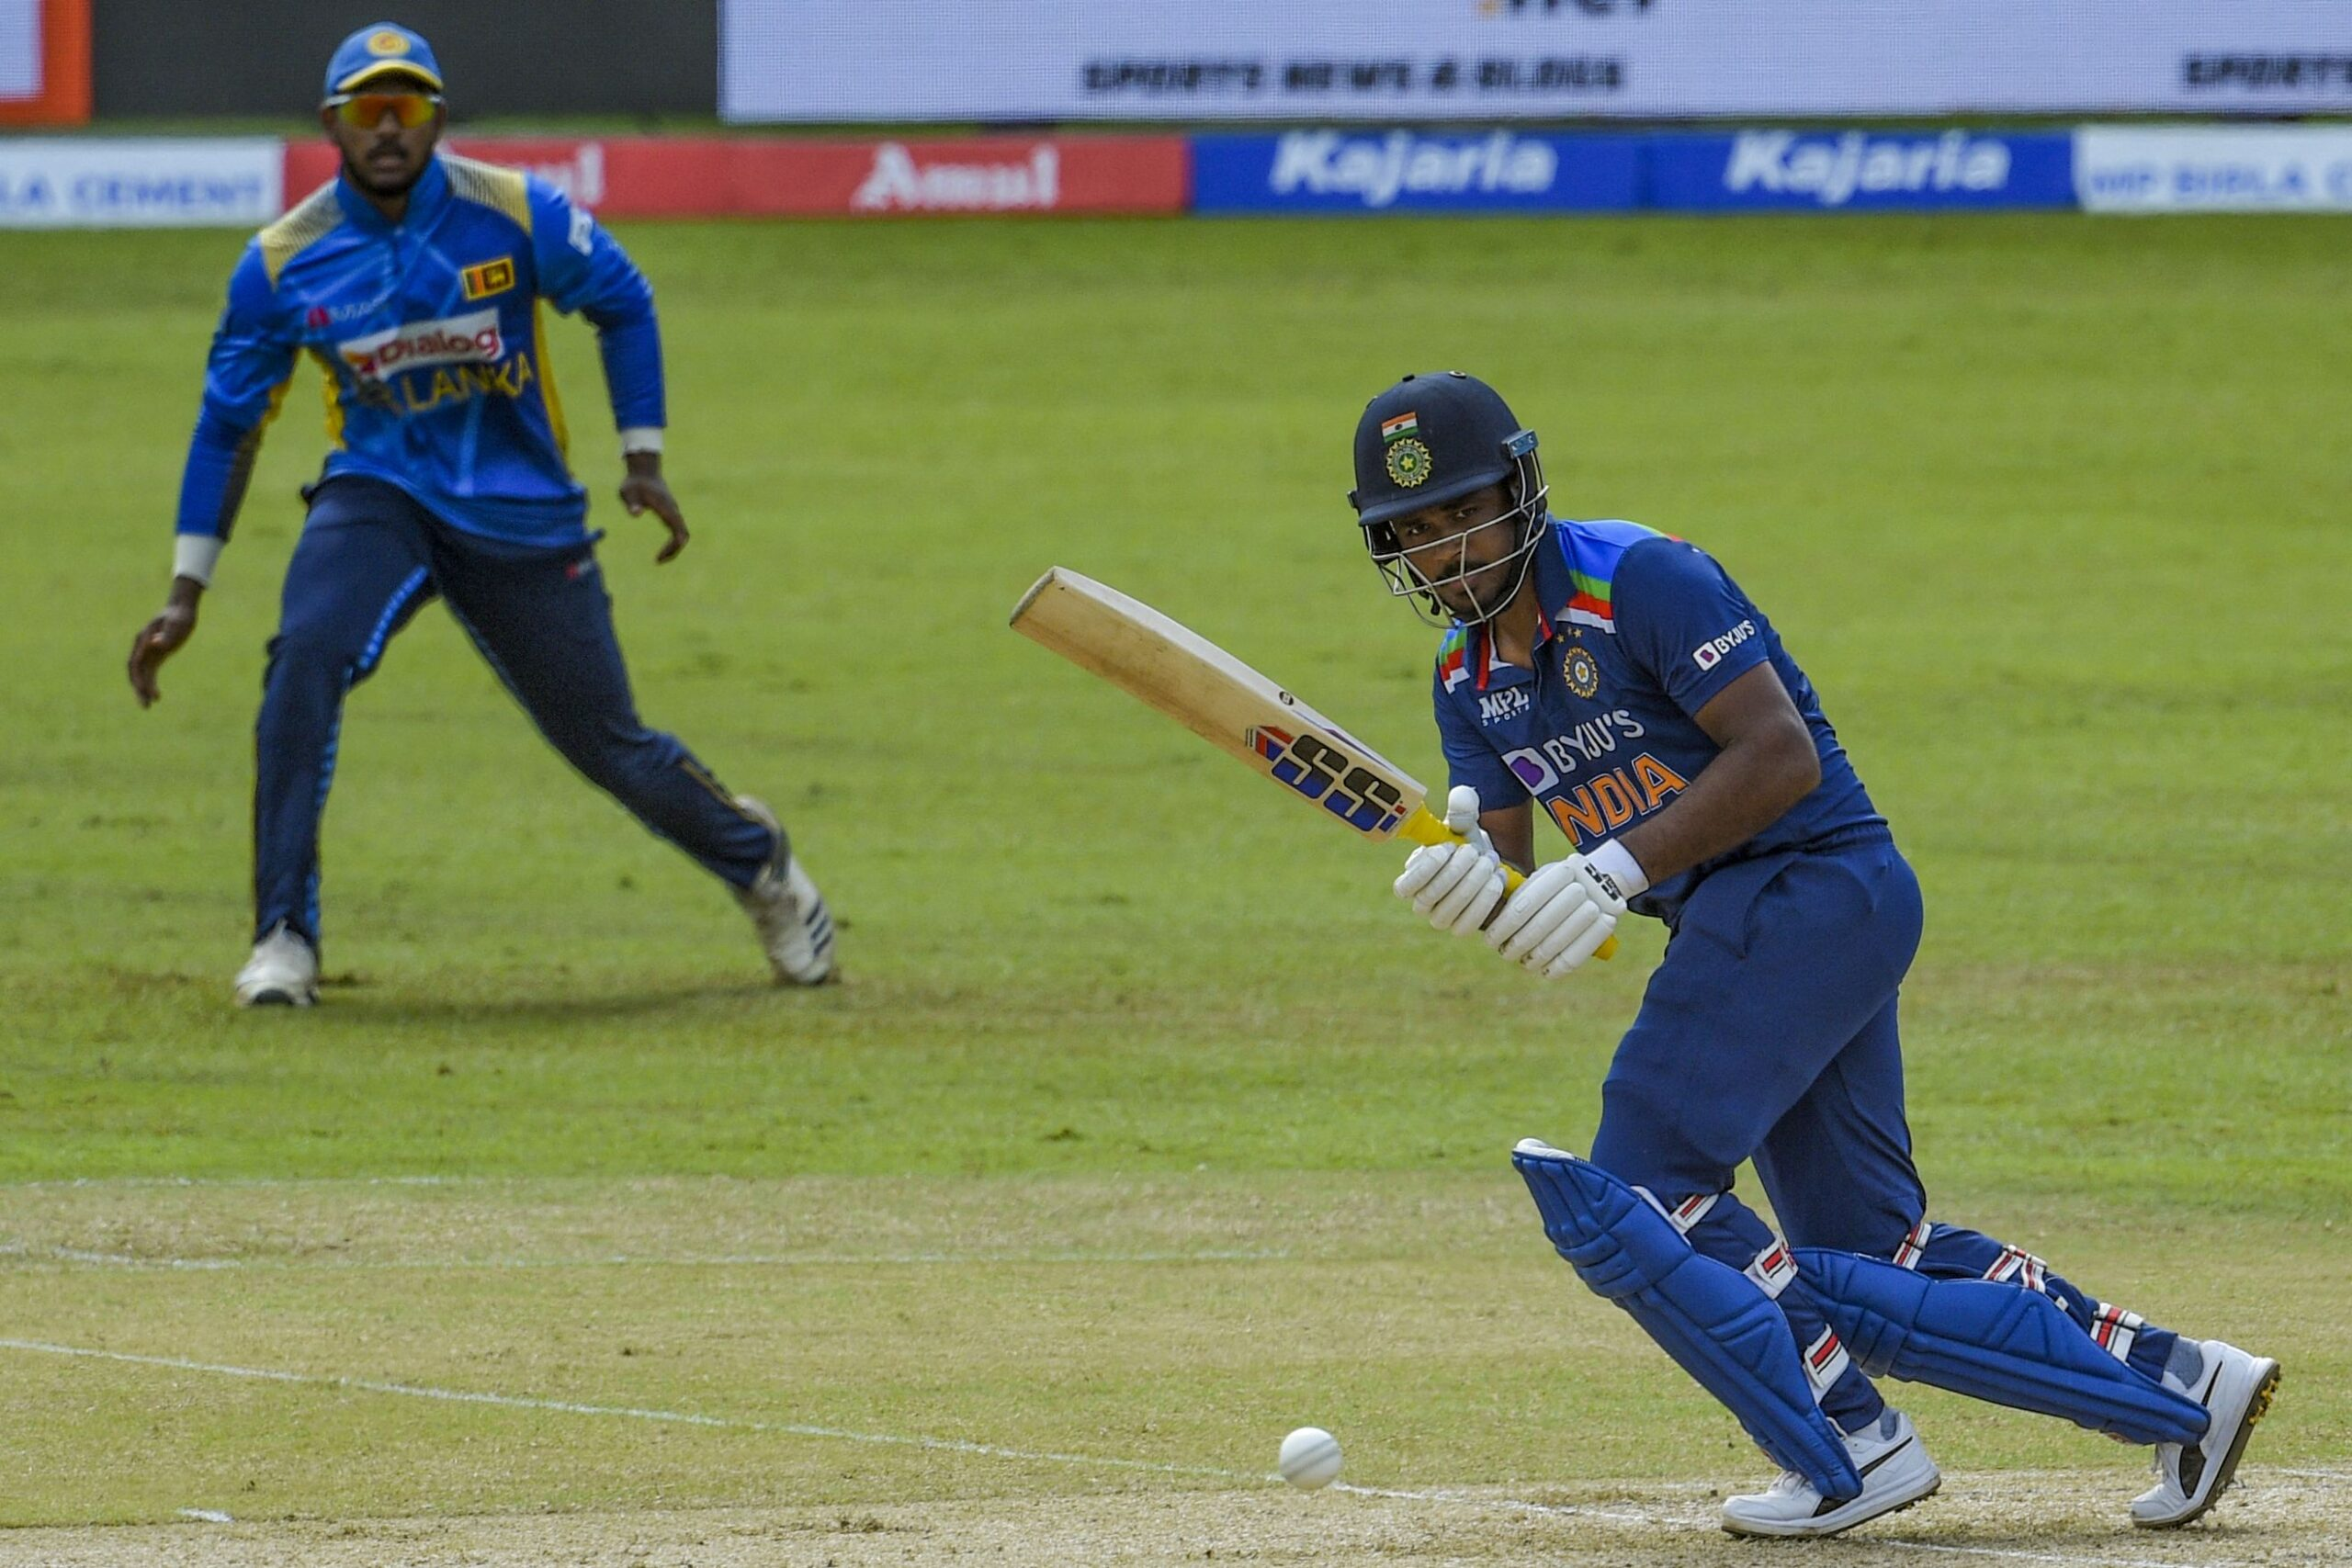 Twitter Reacts As Sri Lanka End 10-Match Losing Streak Against India At Home By Claiming A Comfortable 3-Wicket Win